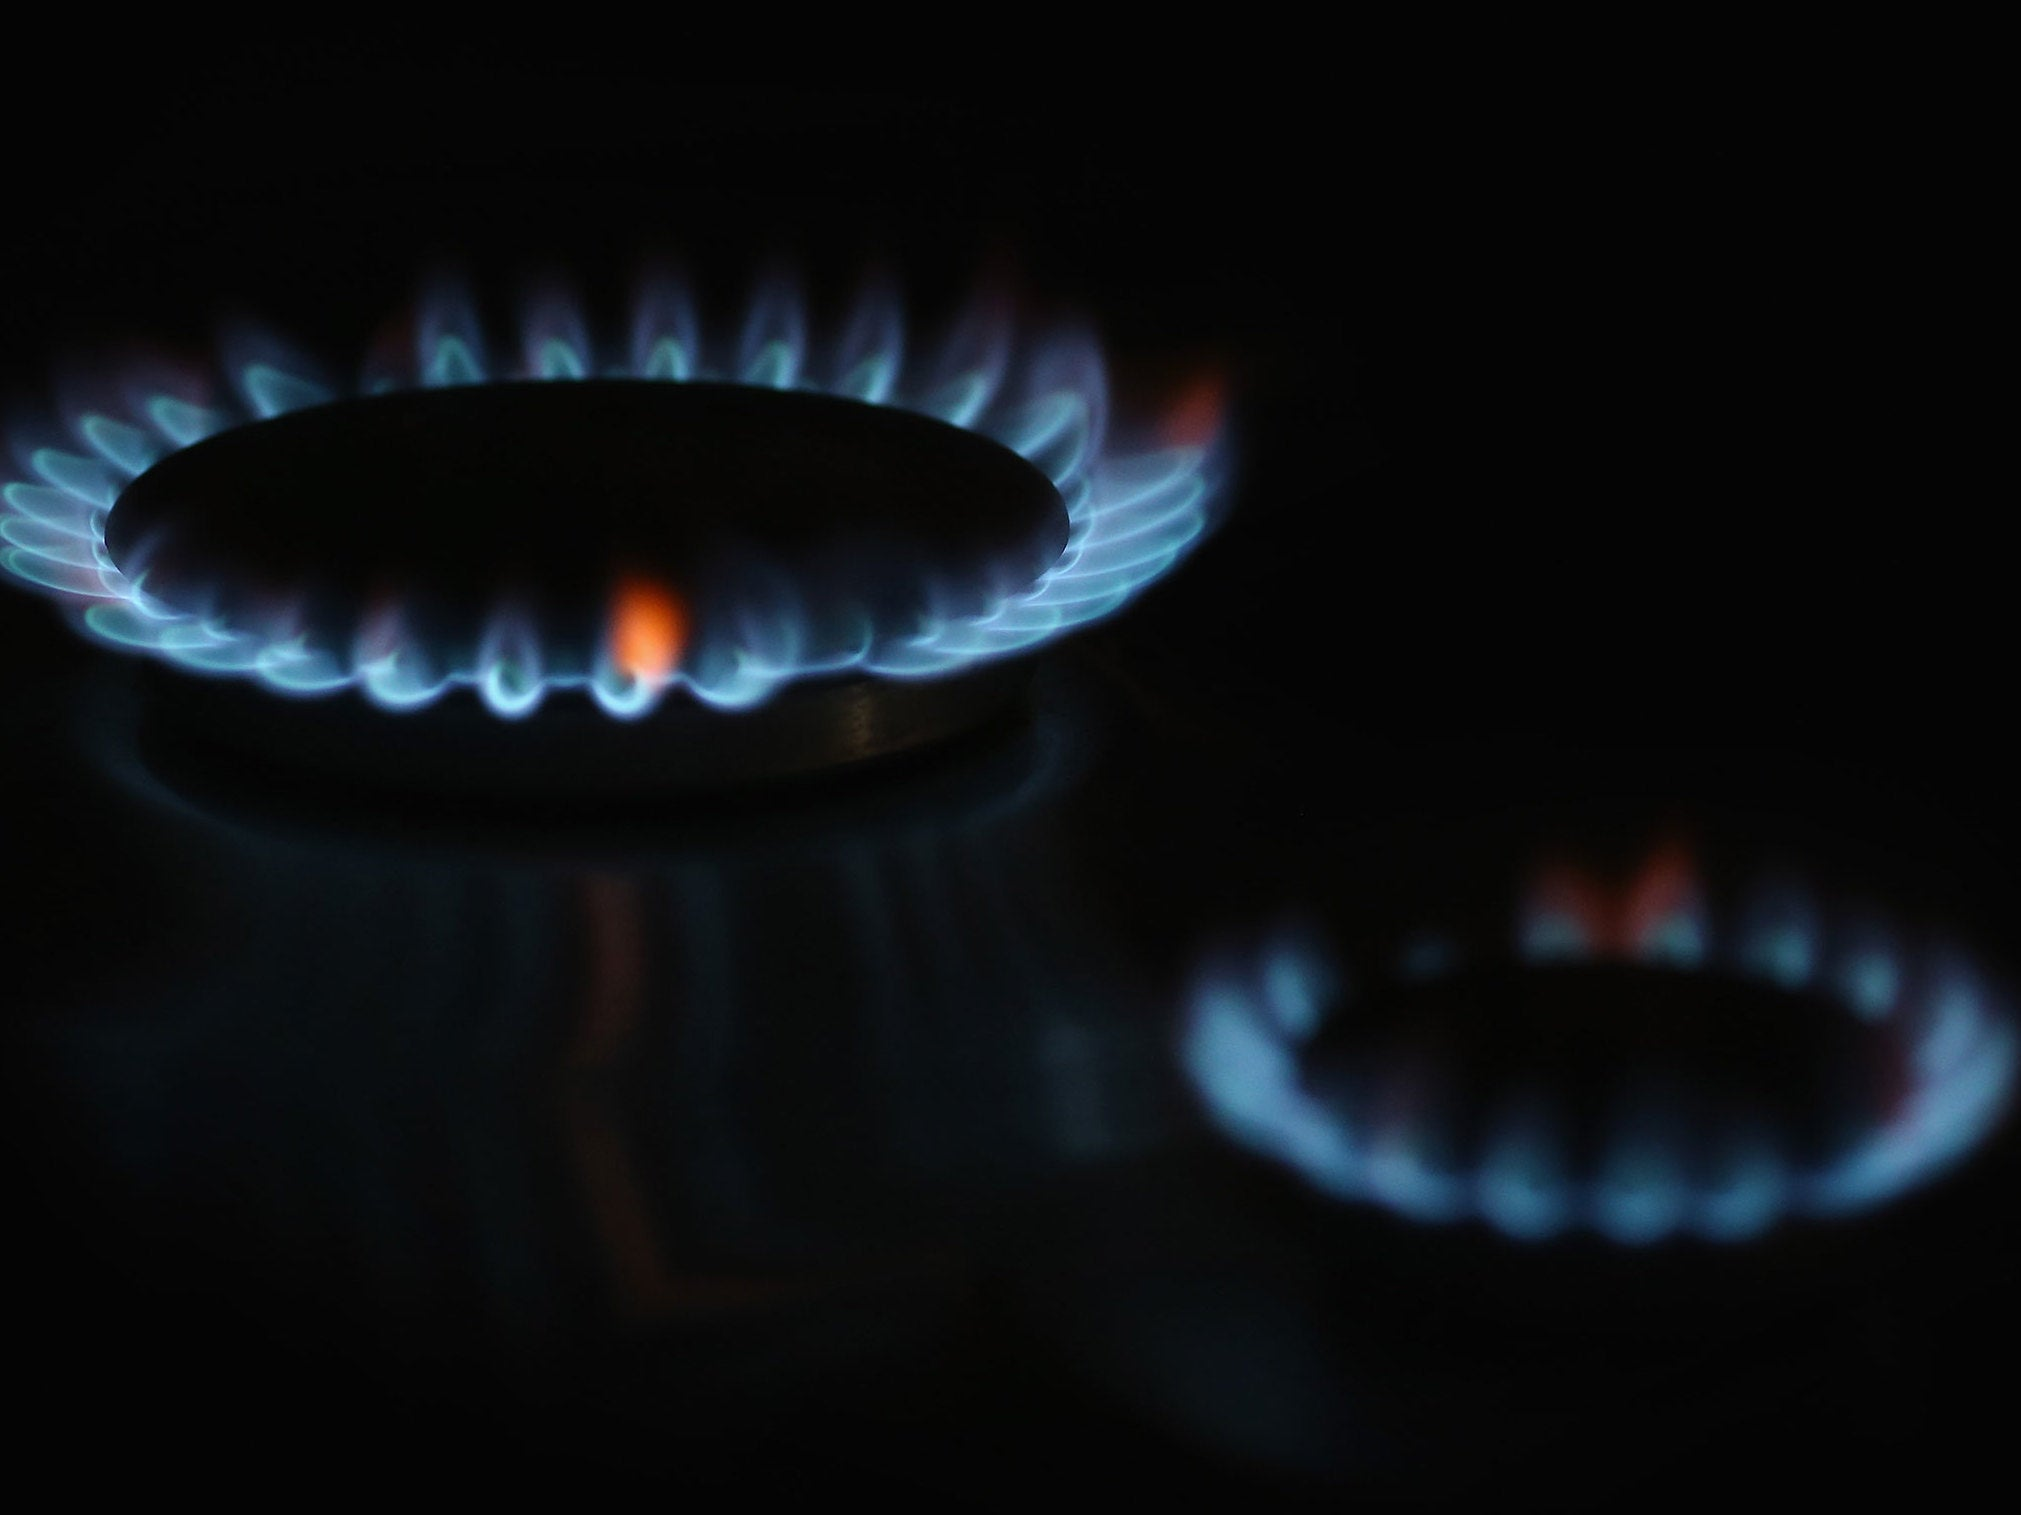 Centrica wraps up annus horribilis on FTSE 100 doormat